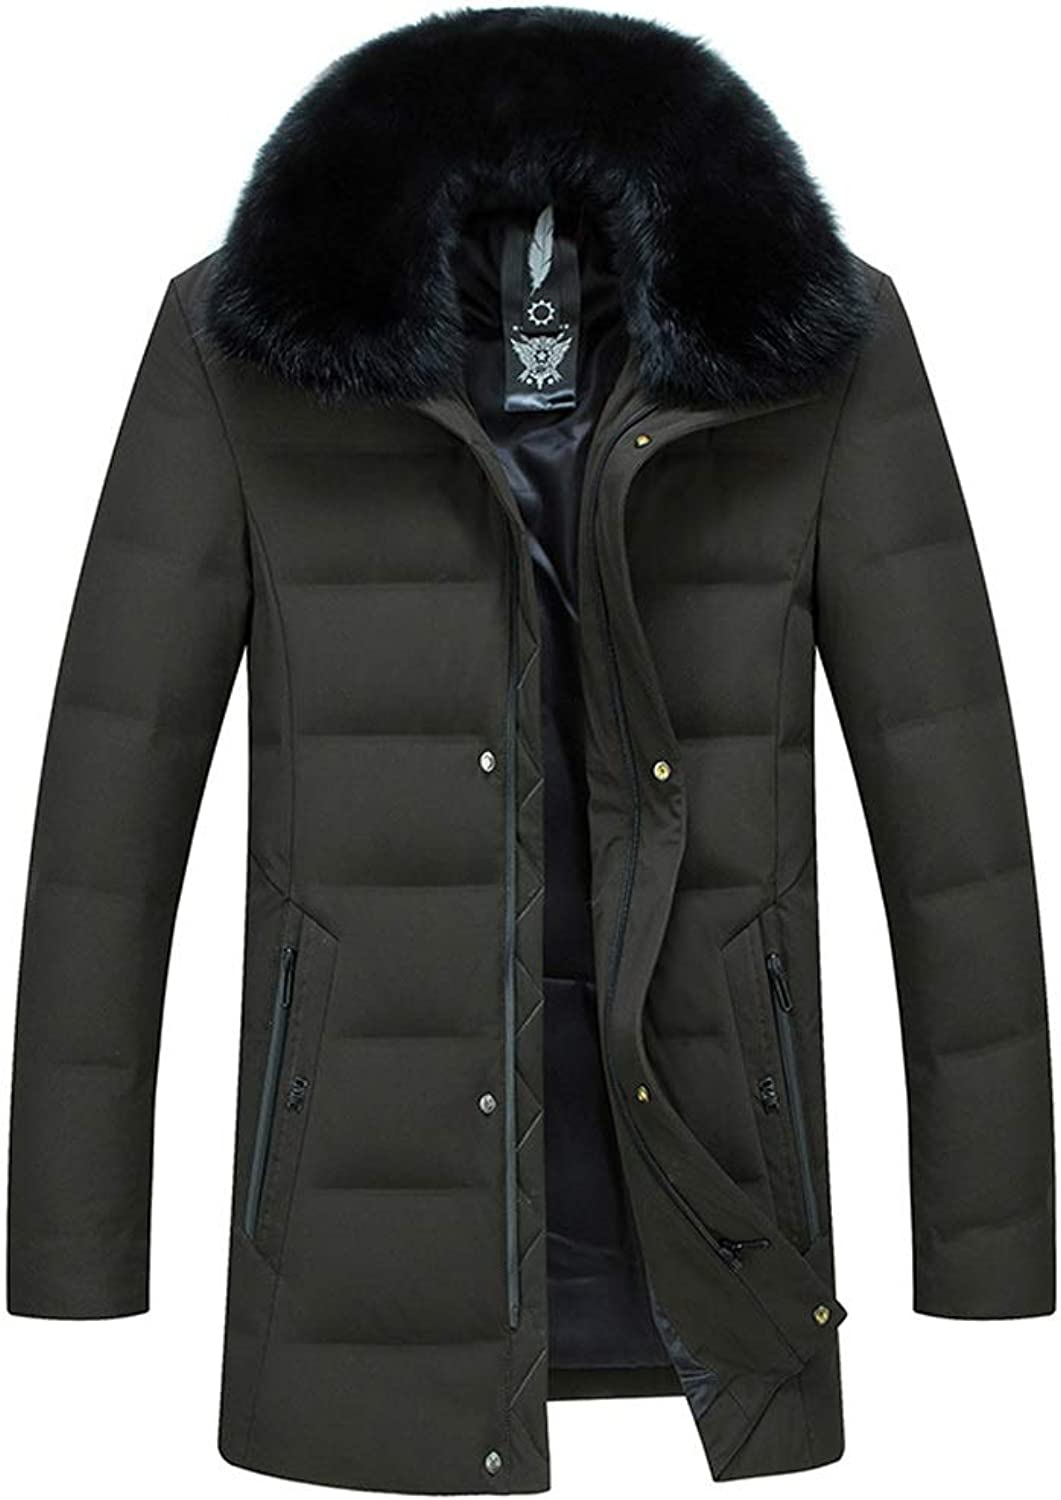 New Down Jacket, Men's Fashion Trend Warm Jacket with Large Fur Collar, Winter Outdoor Cold Padded Clothing, Suitable for Cold Weather (color   Green, Size   L)